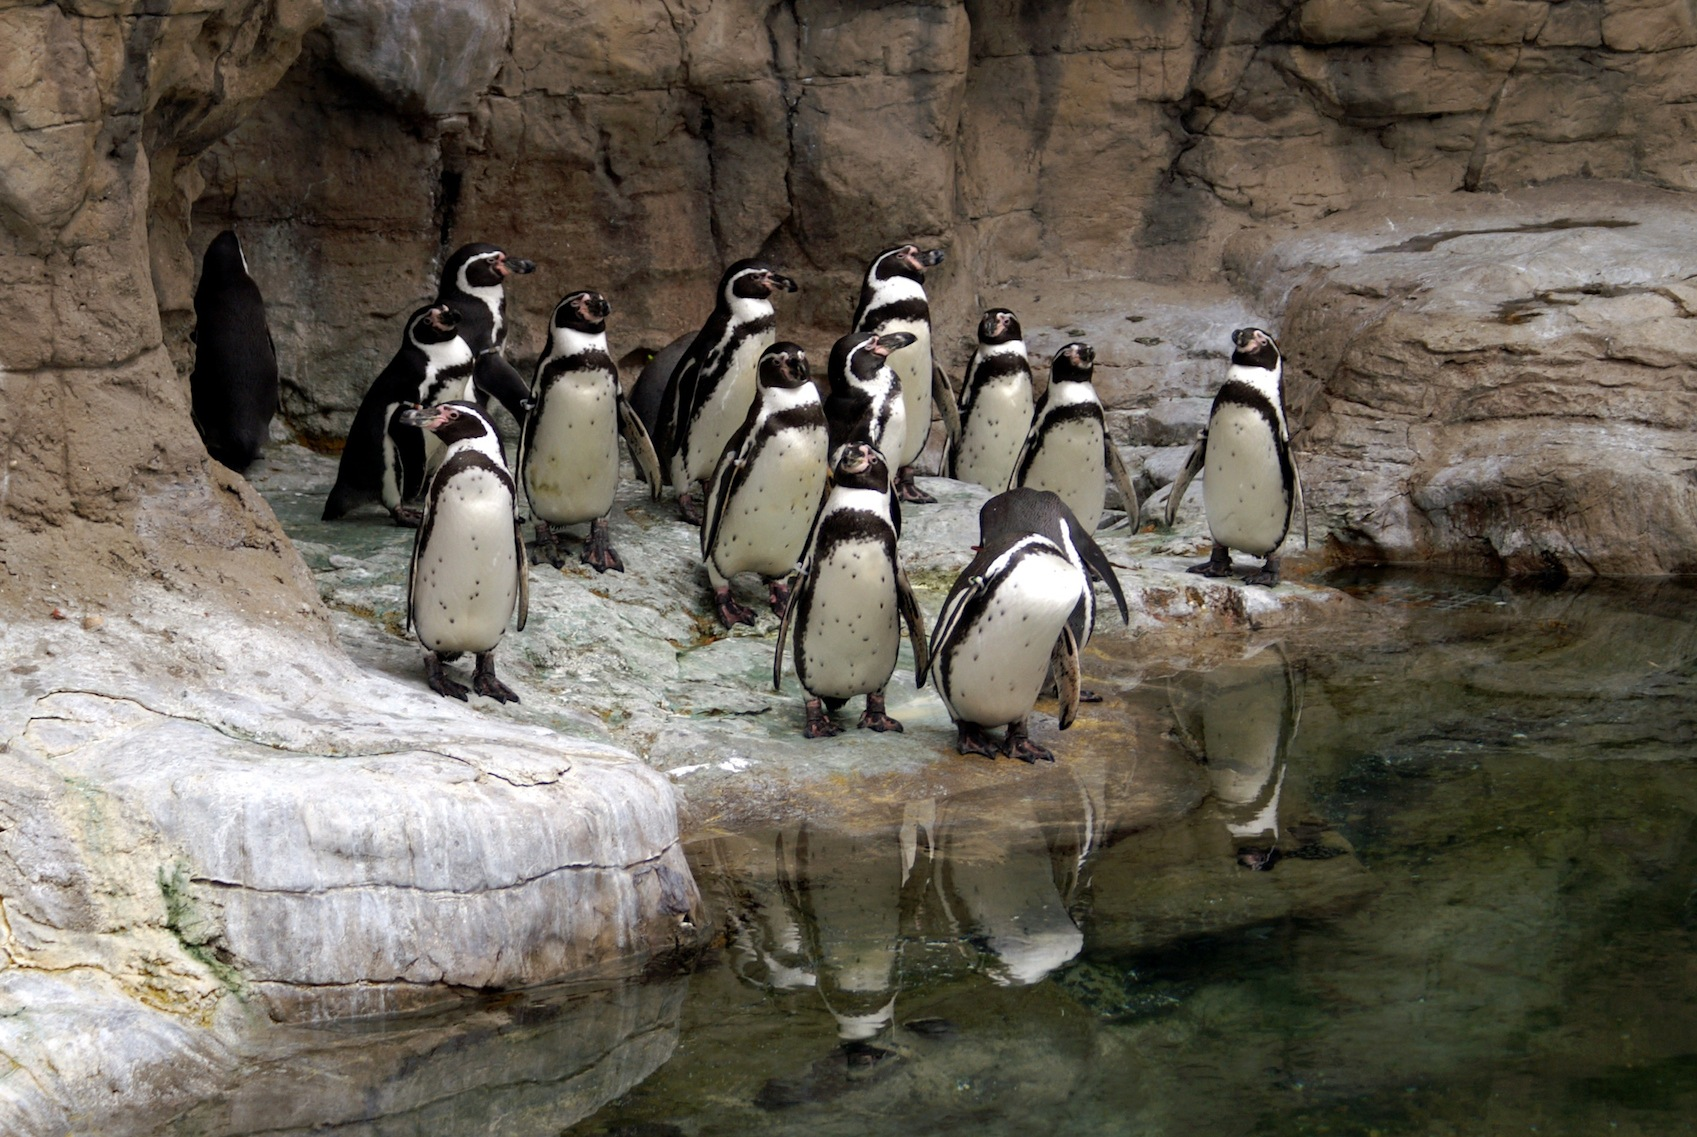 Group of Penguins at the St. Louis Zoo